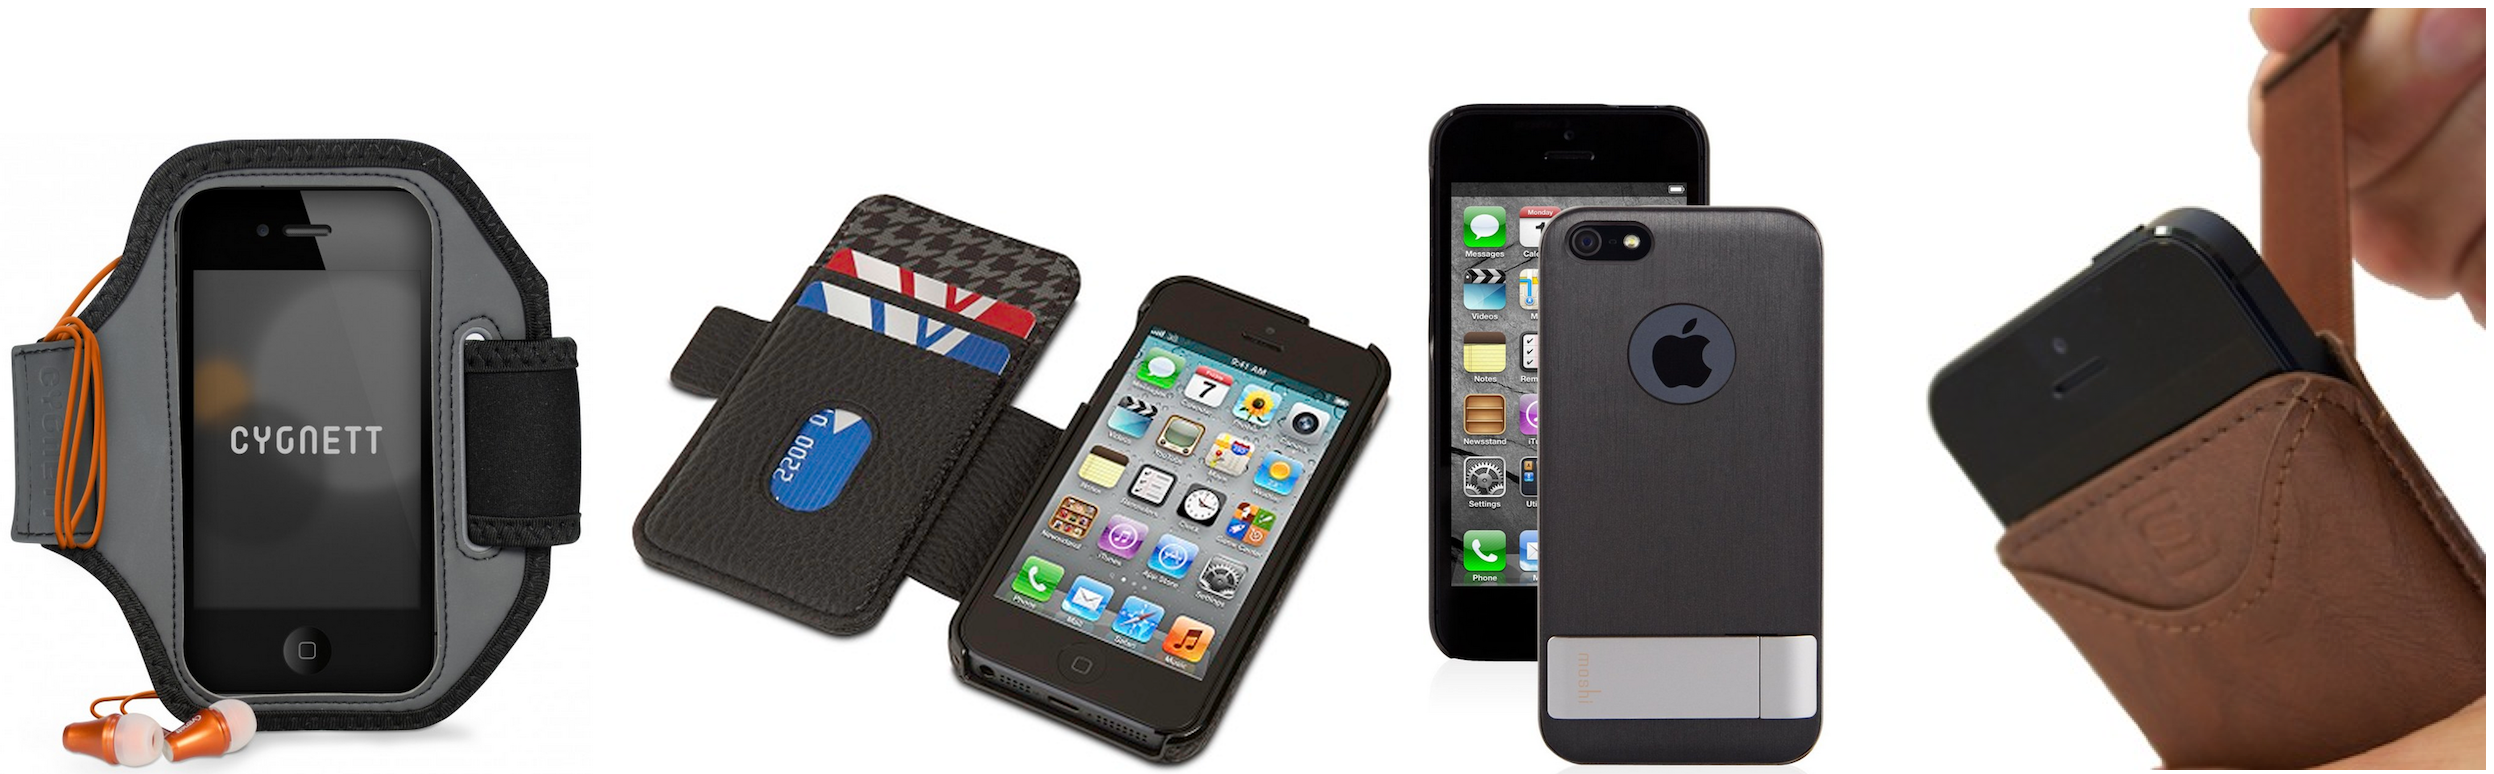 iPhone 5 gift guide cases